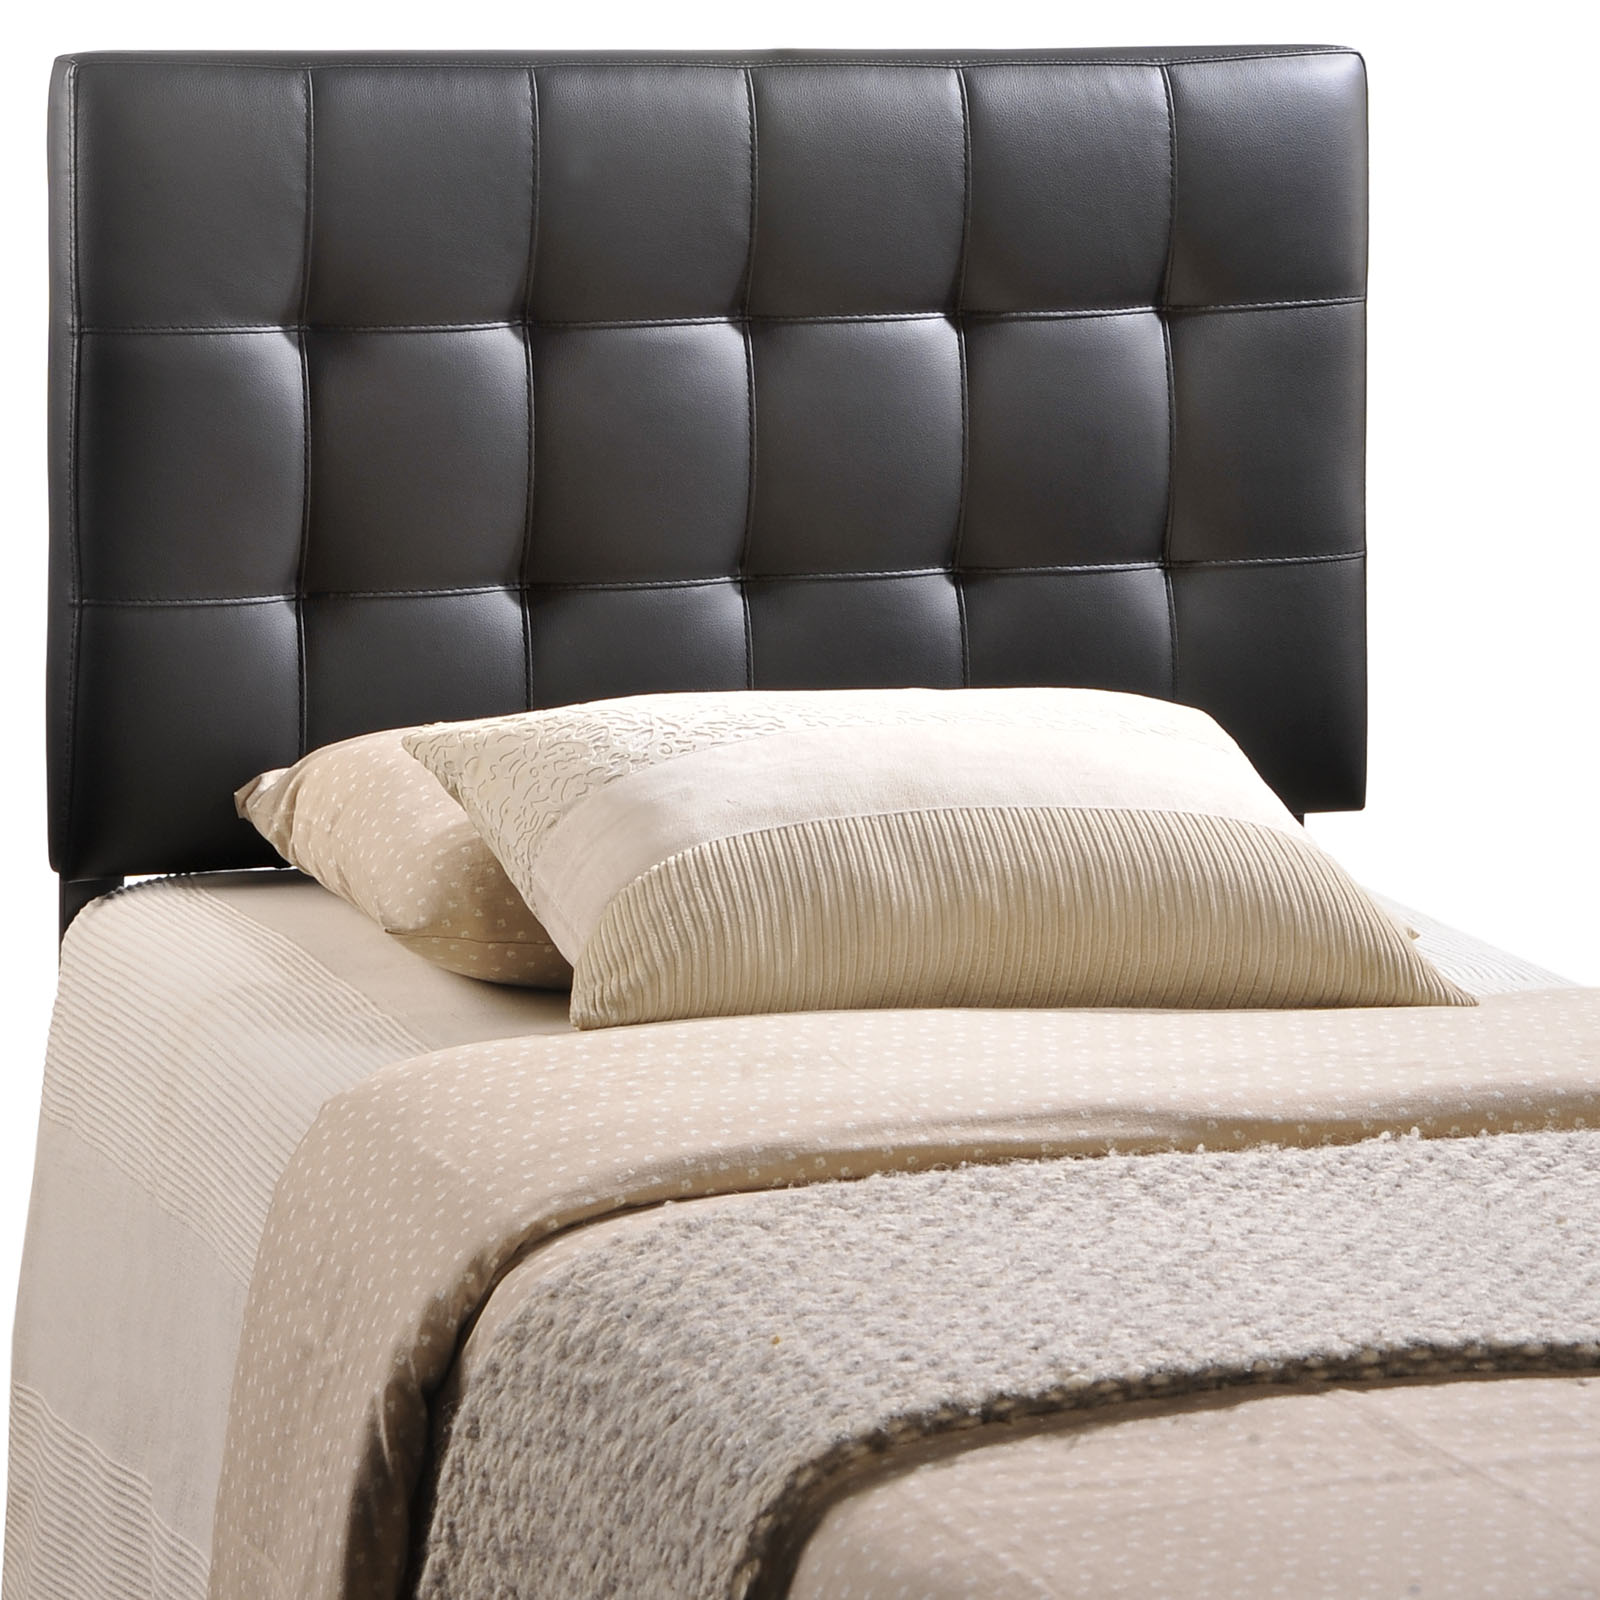 Modway Lily Tufted Headboard, Multiple Sizes and Colors